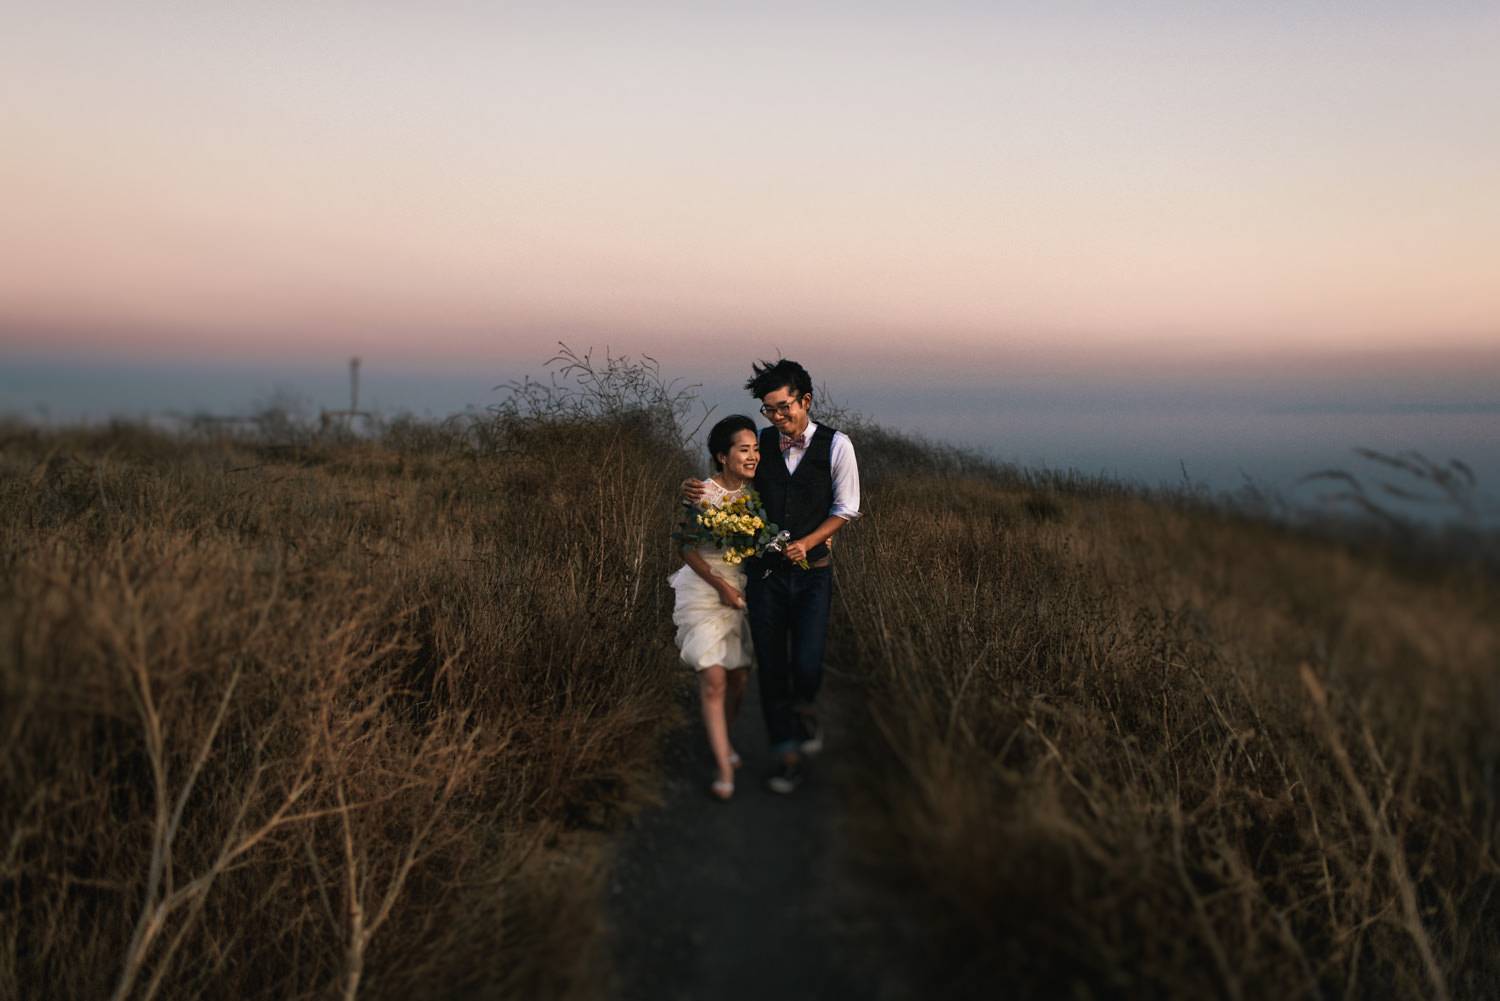 married couple walking together in the wind - Best LA Wedding Photography